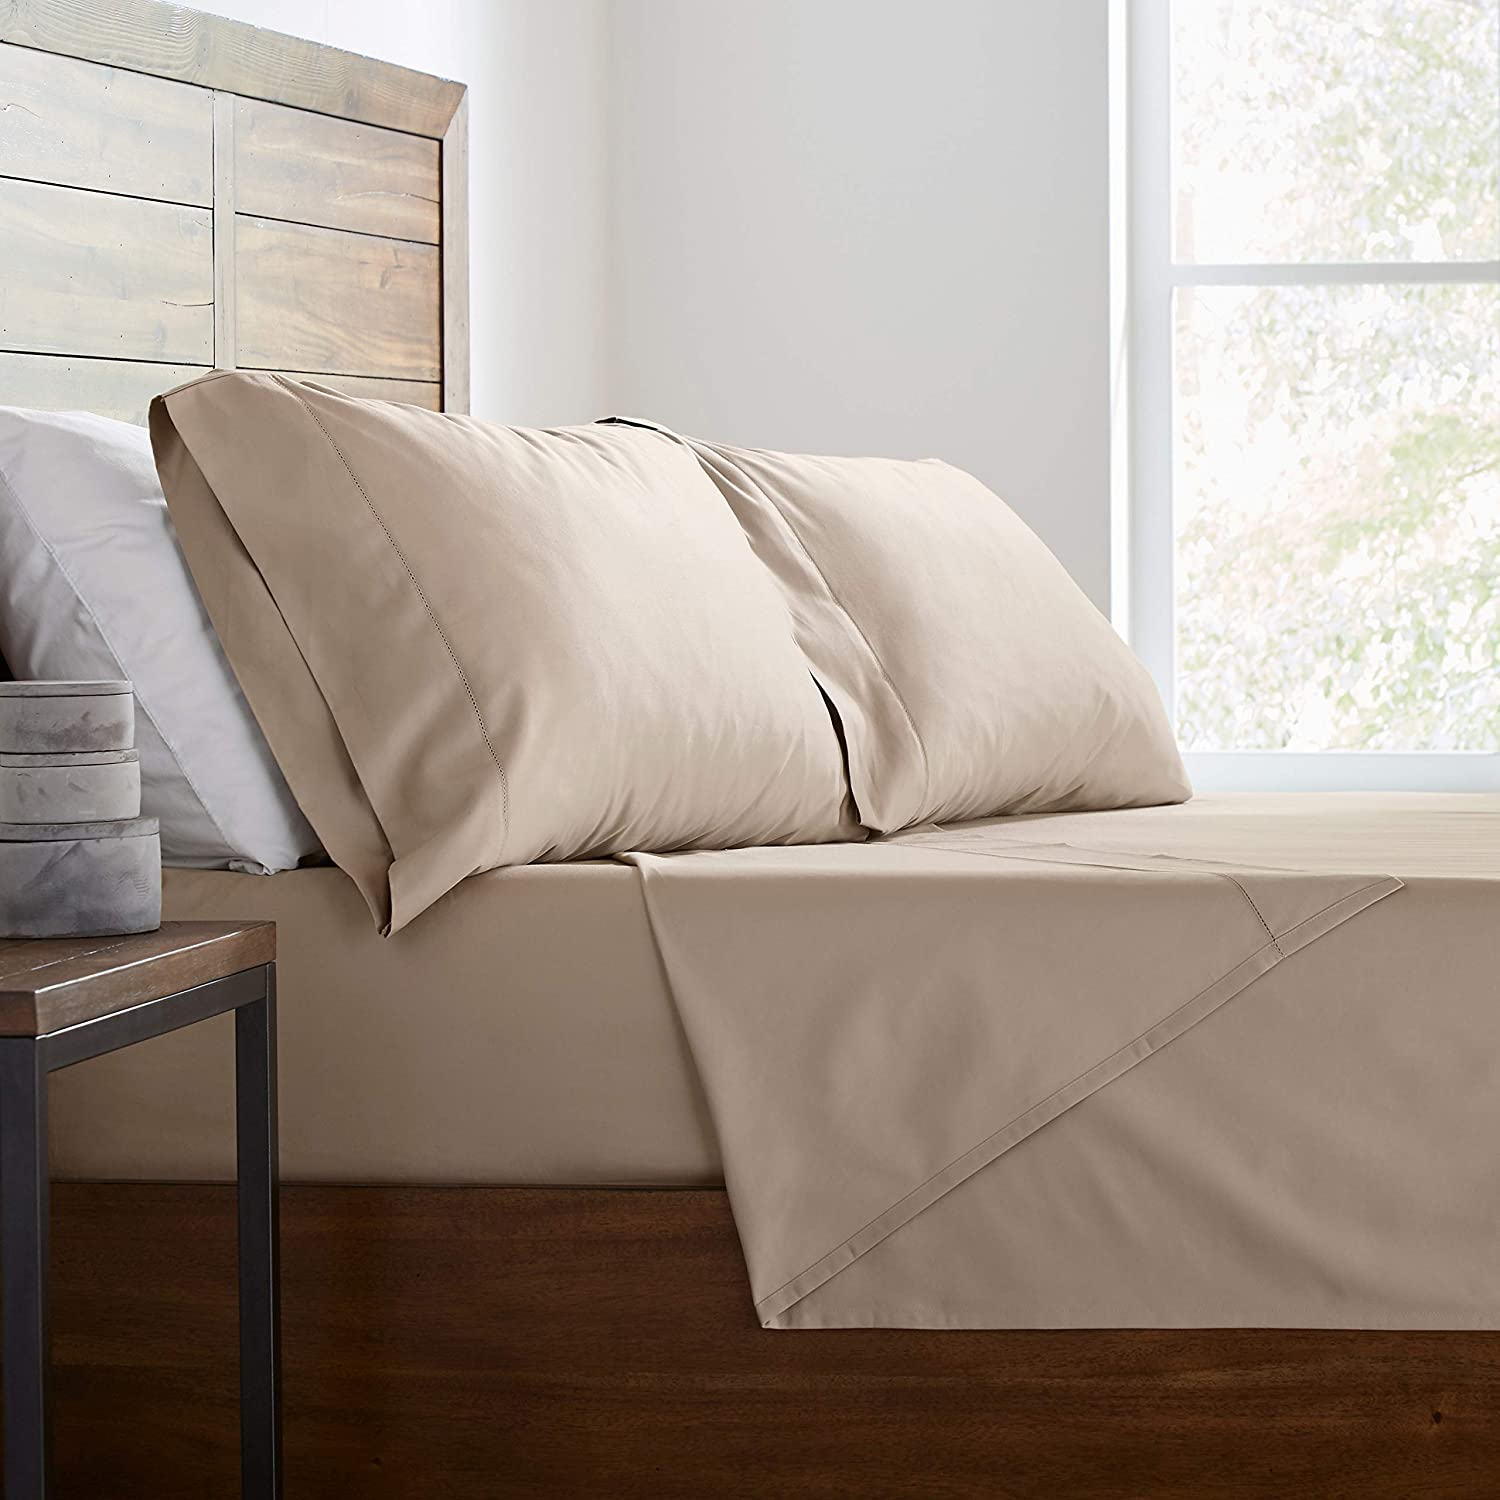 Soft and Easy Care Cloud 2DGJH 2DGJH42 King Stone /& Beam 100/% Supima Cotton Pillowcase Set